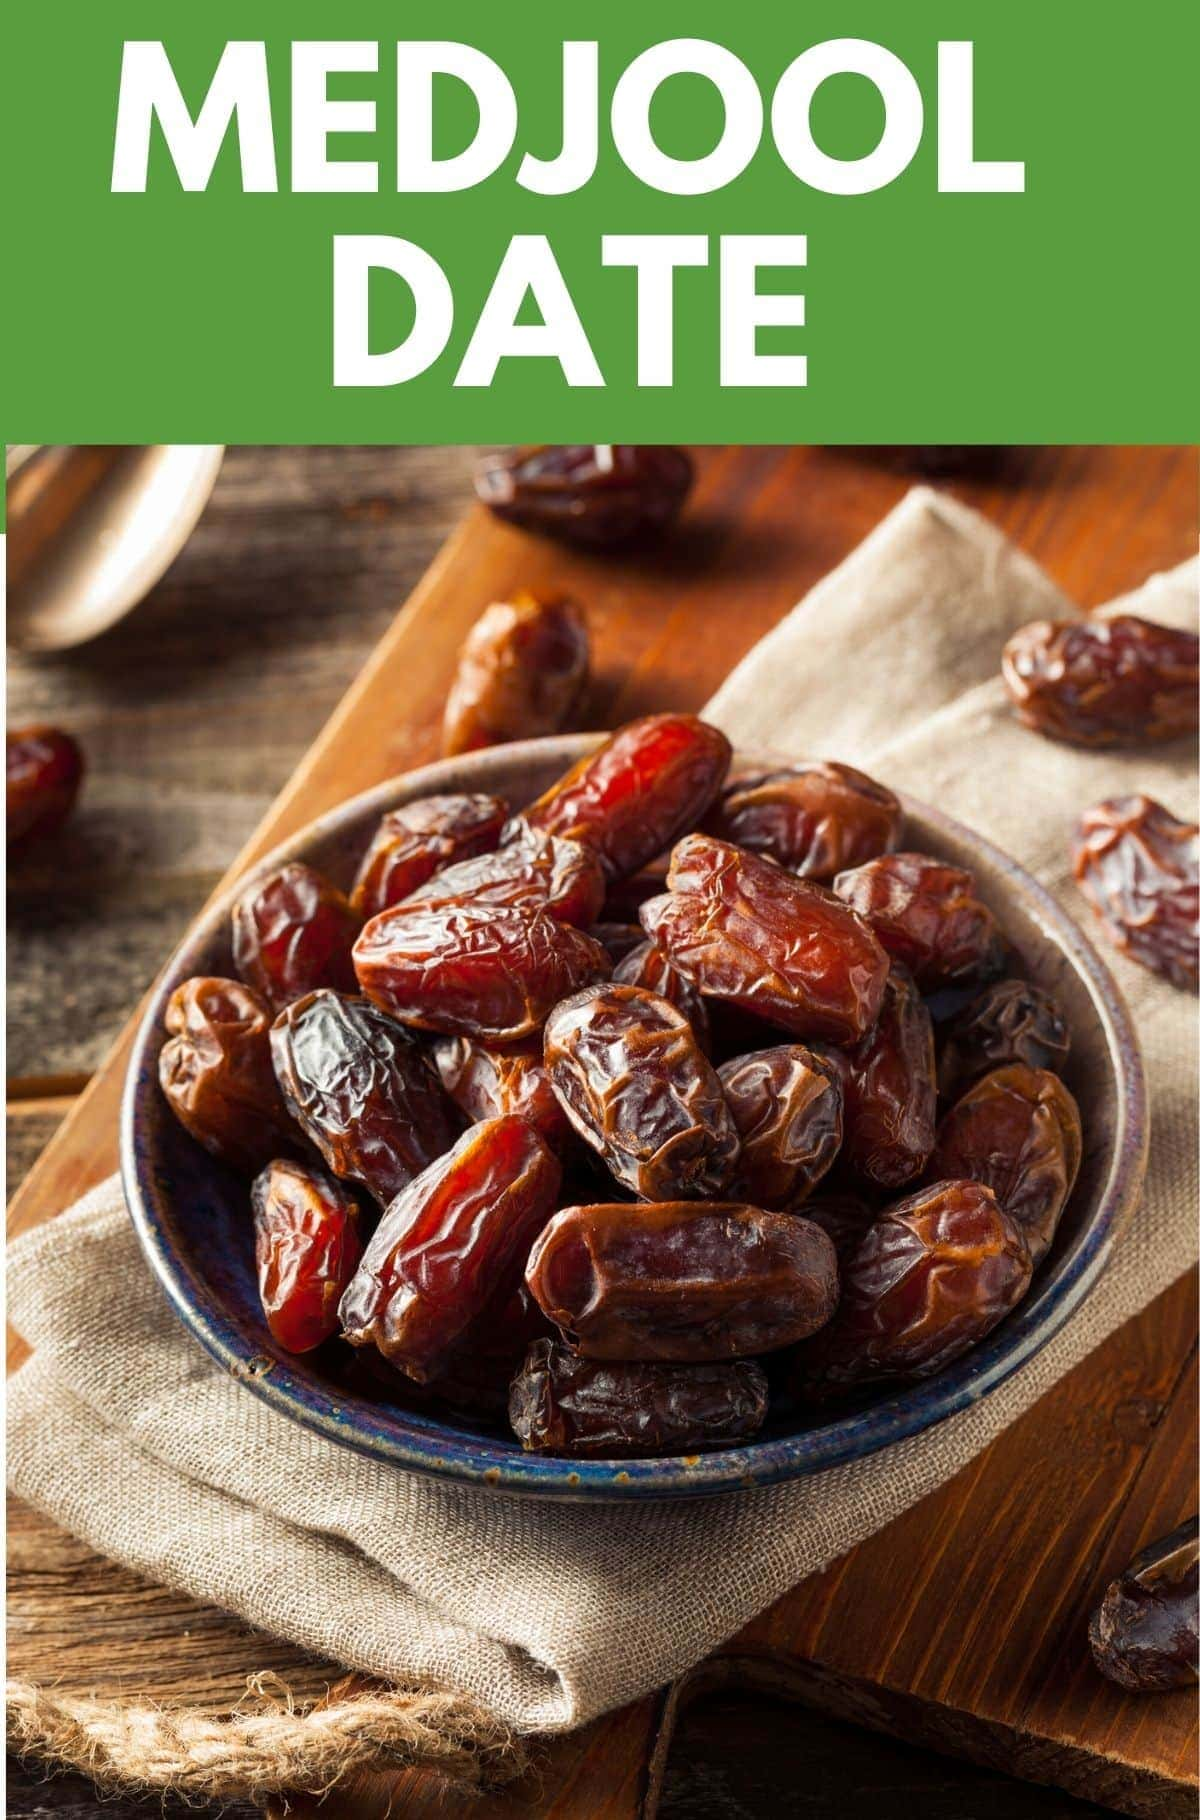 Medjool Date Nutrition And Benefits